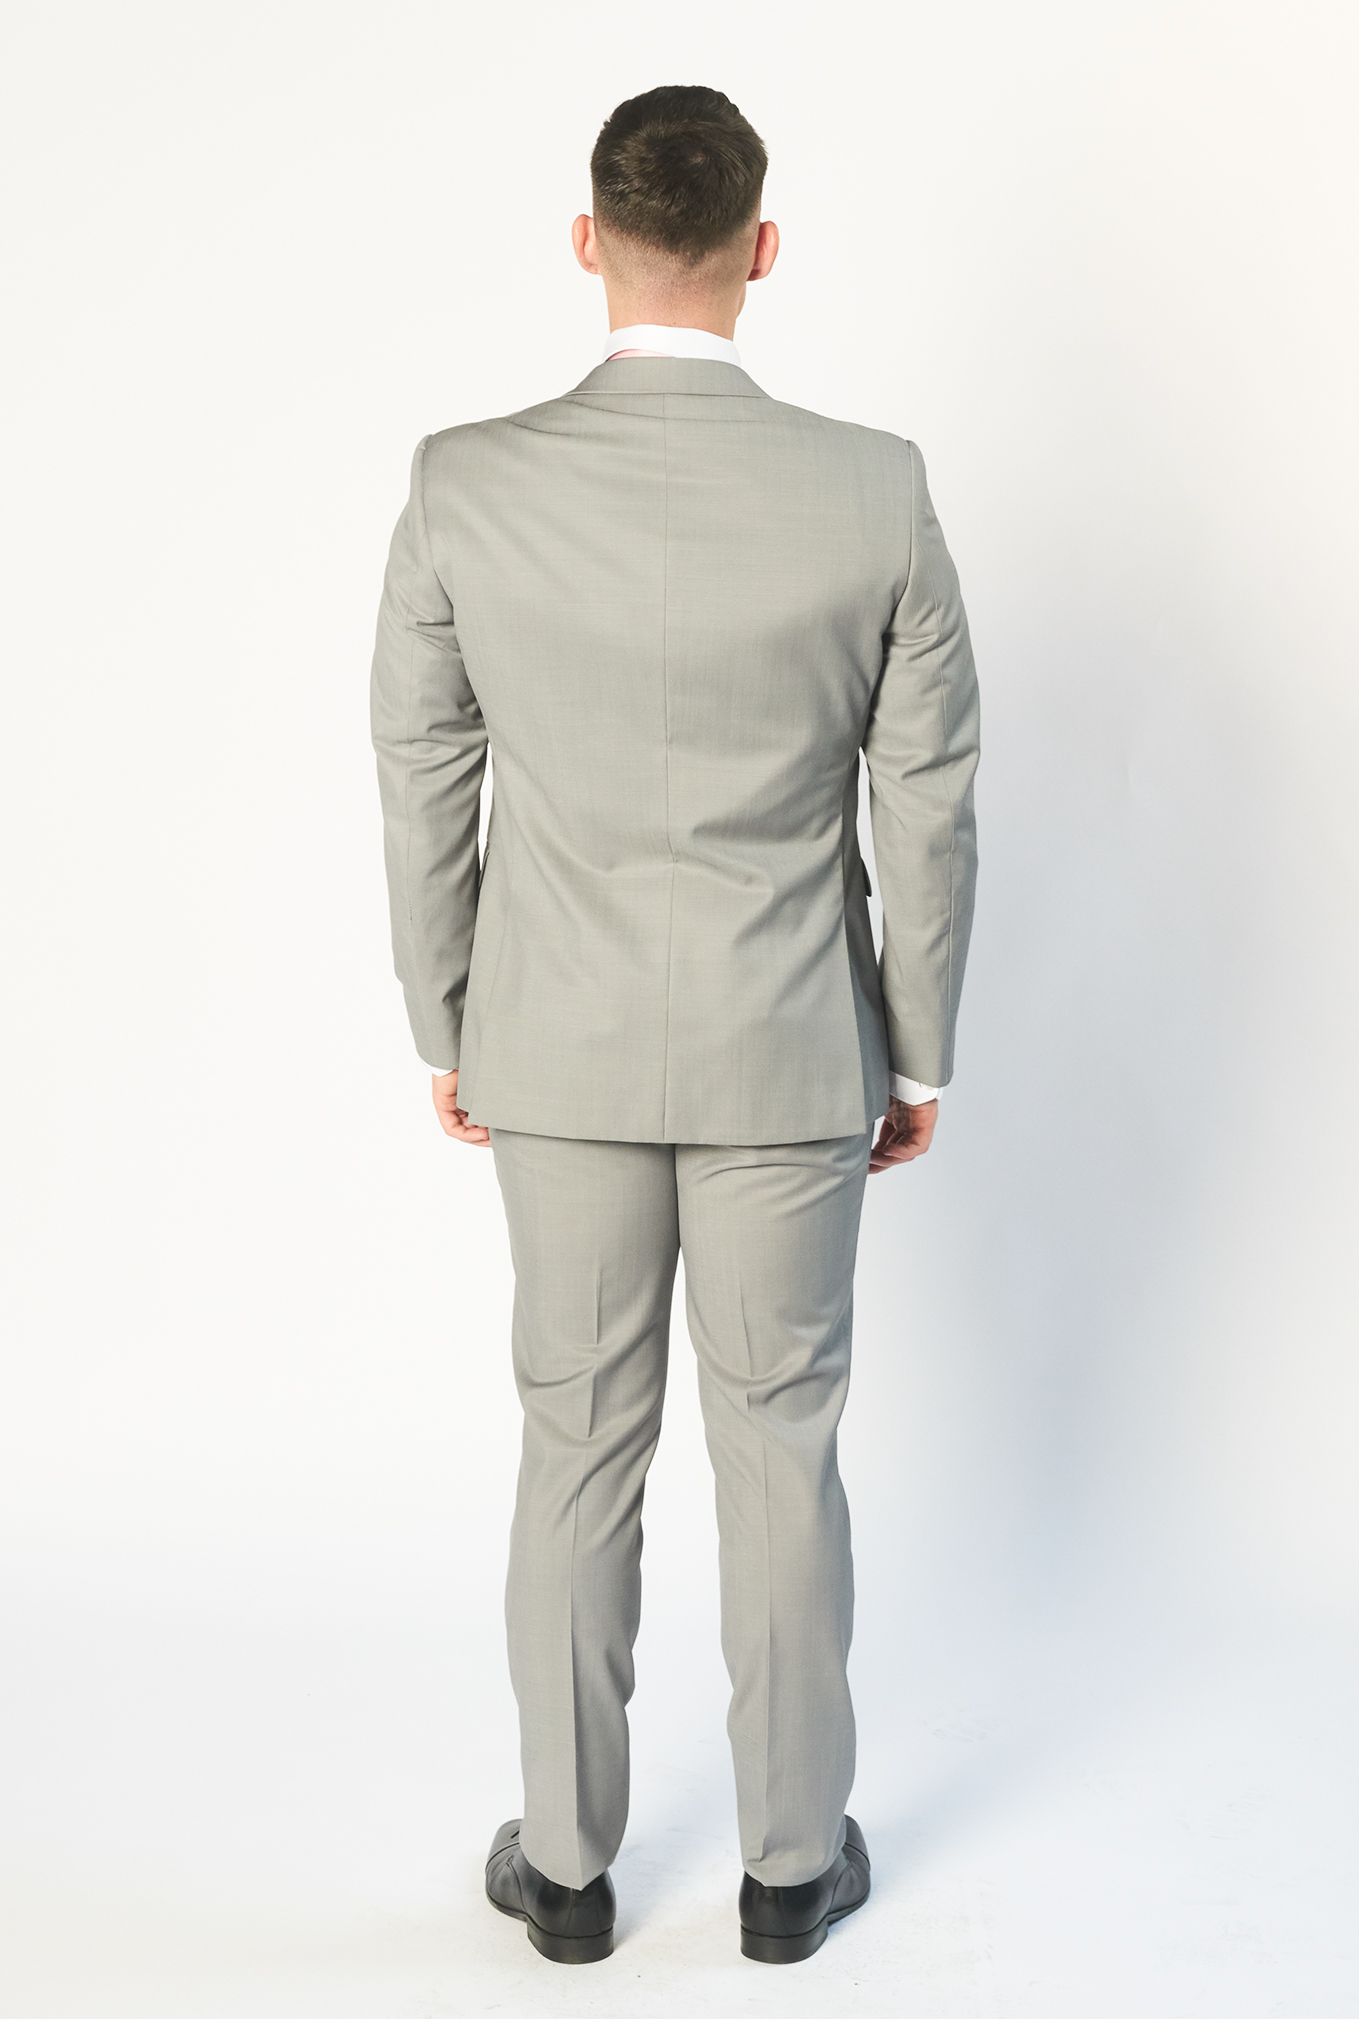 The Jet light grey suit from behind